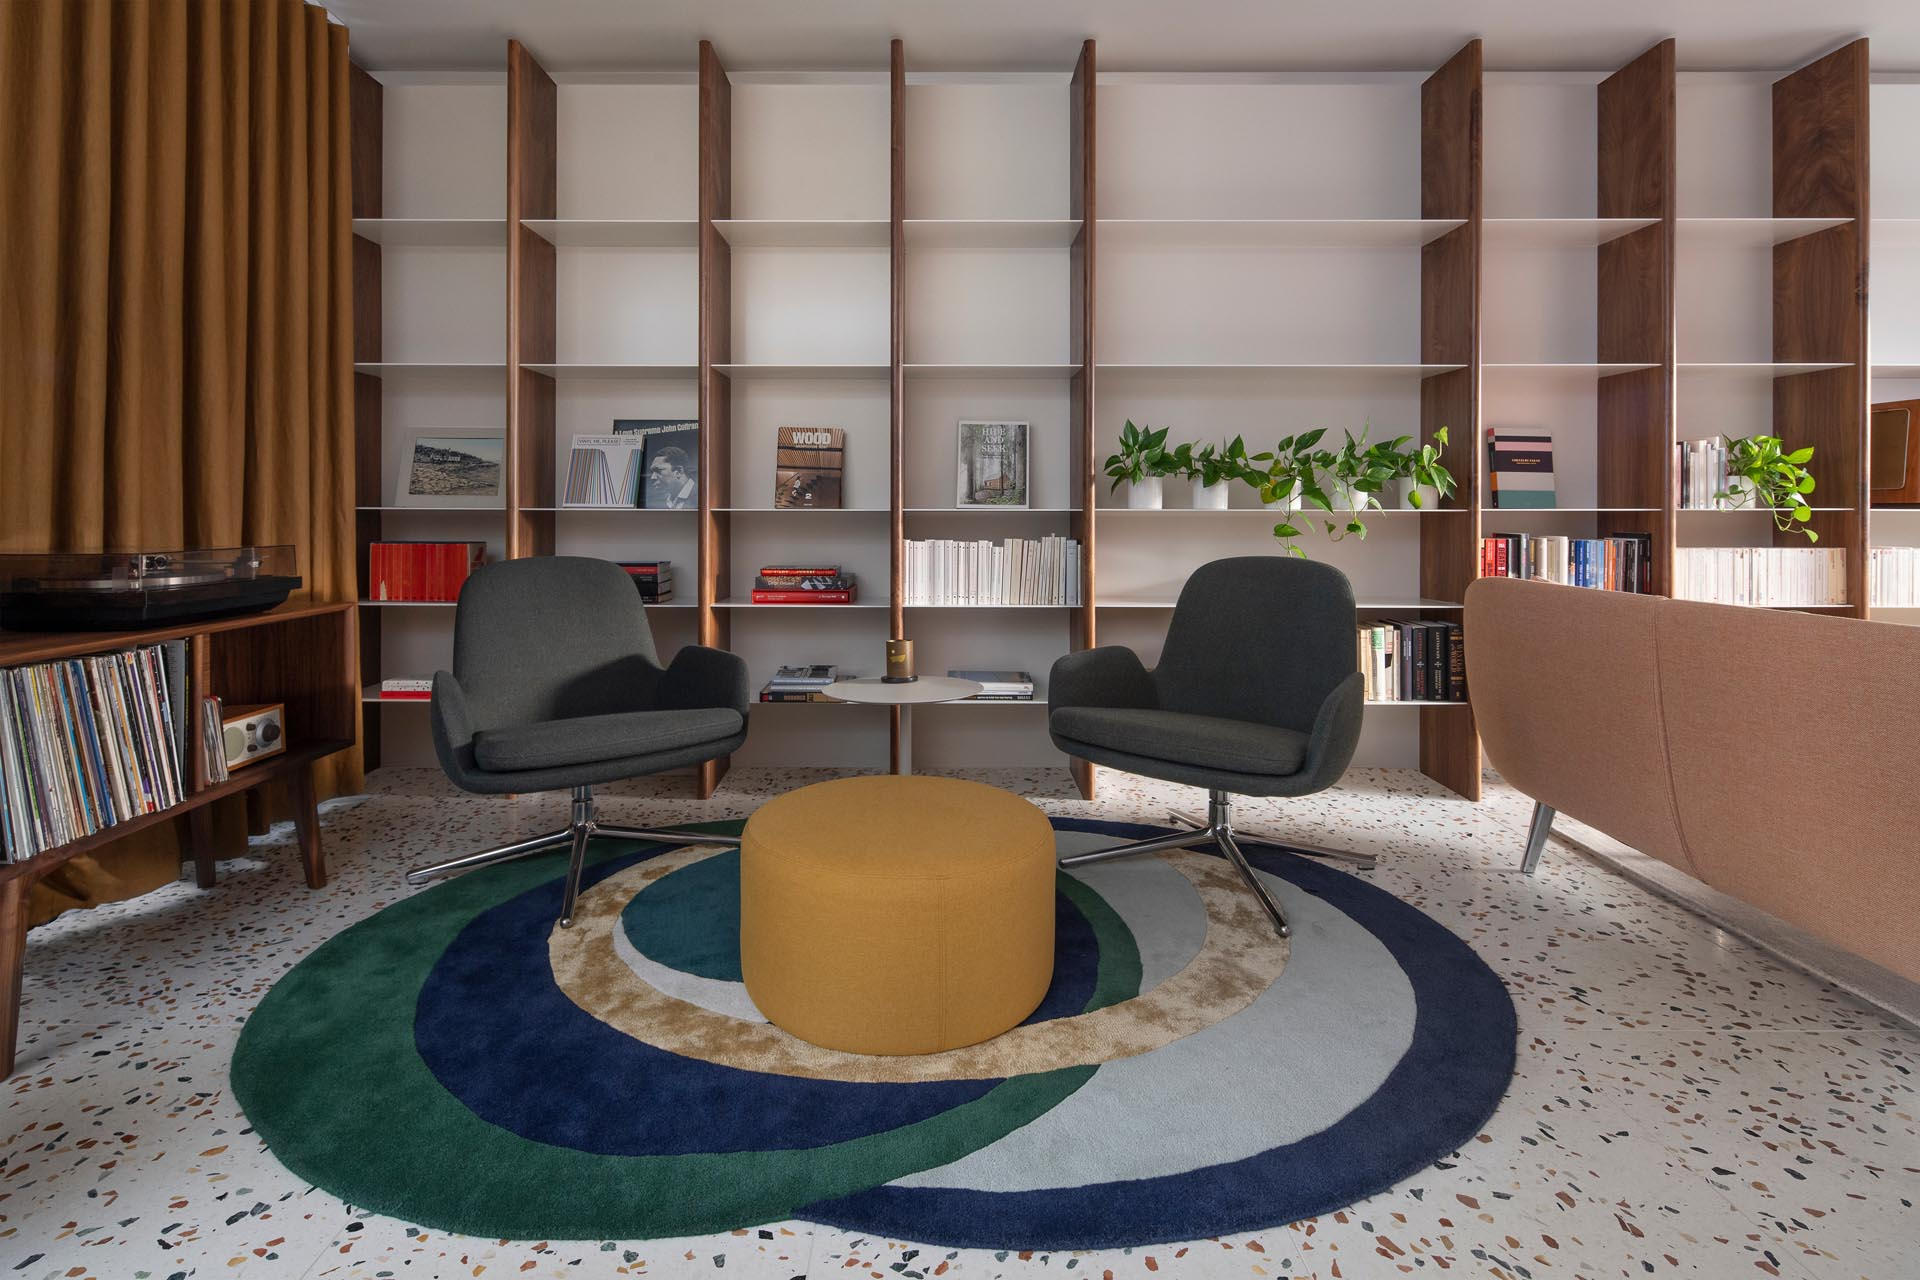 This modern living room with a terrazzo tiled floor, receives plenty of natural light, while a custom wood and metal shelving unit covers the entire wall and expands through to a secondary seating area with a colorful rug and record player.